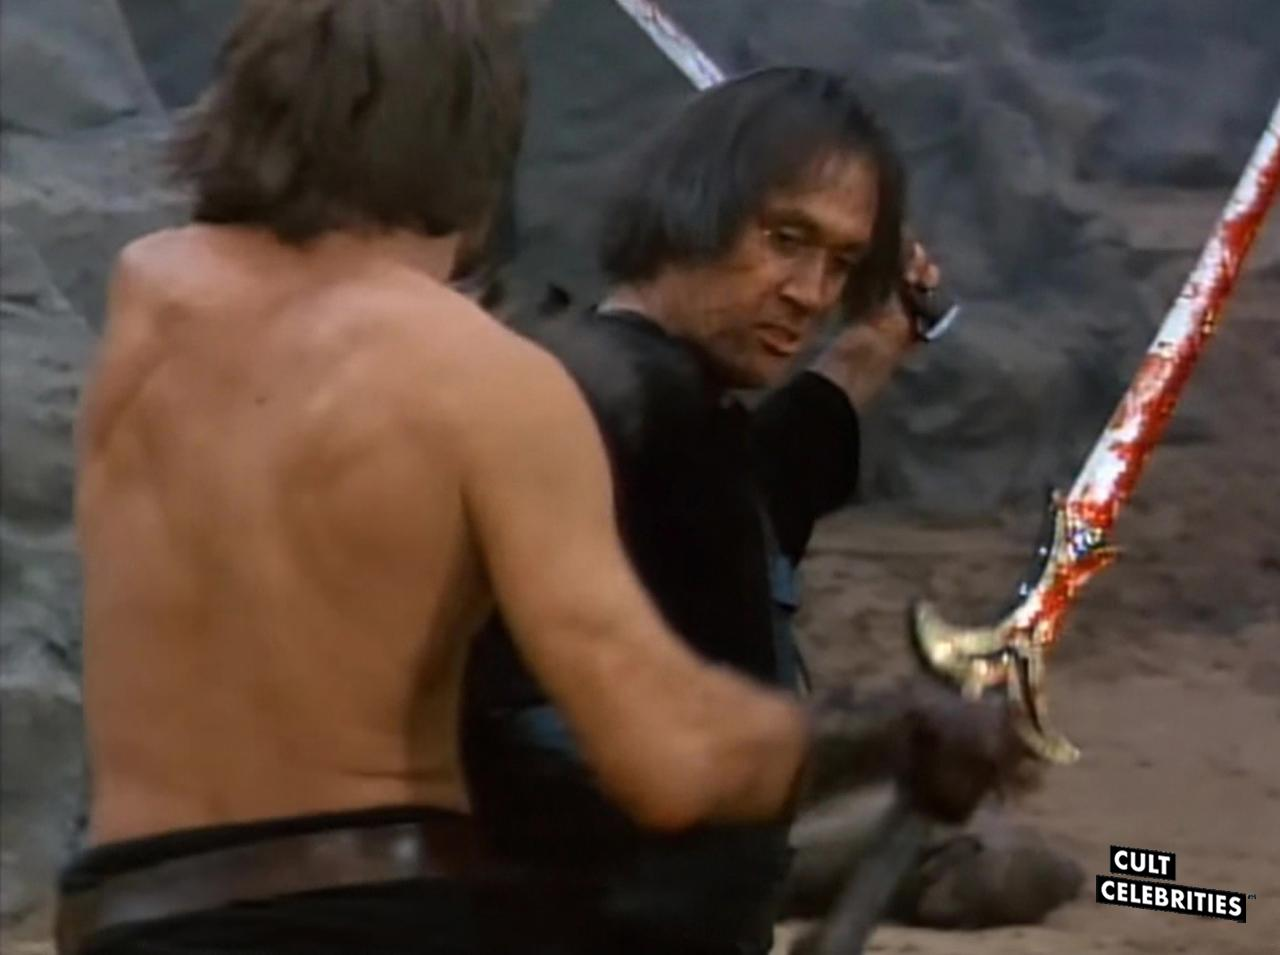 David Carradine in The Warrior and the Sorceress (1984)